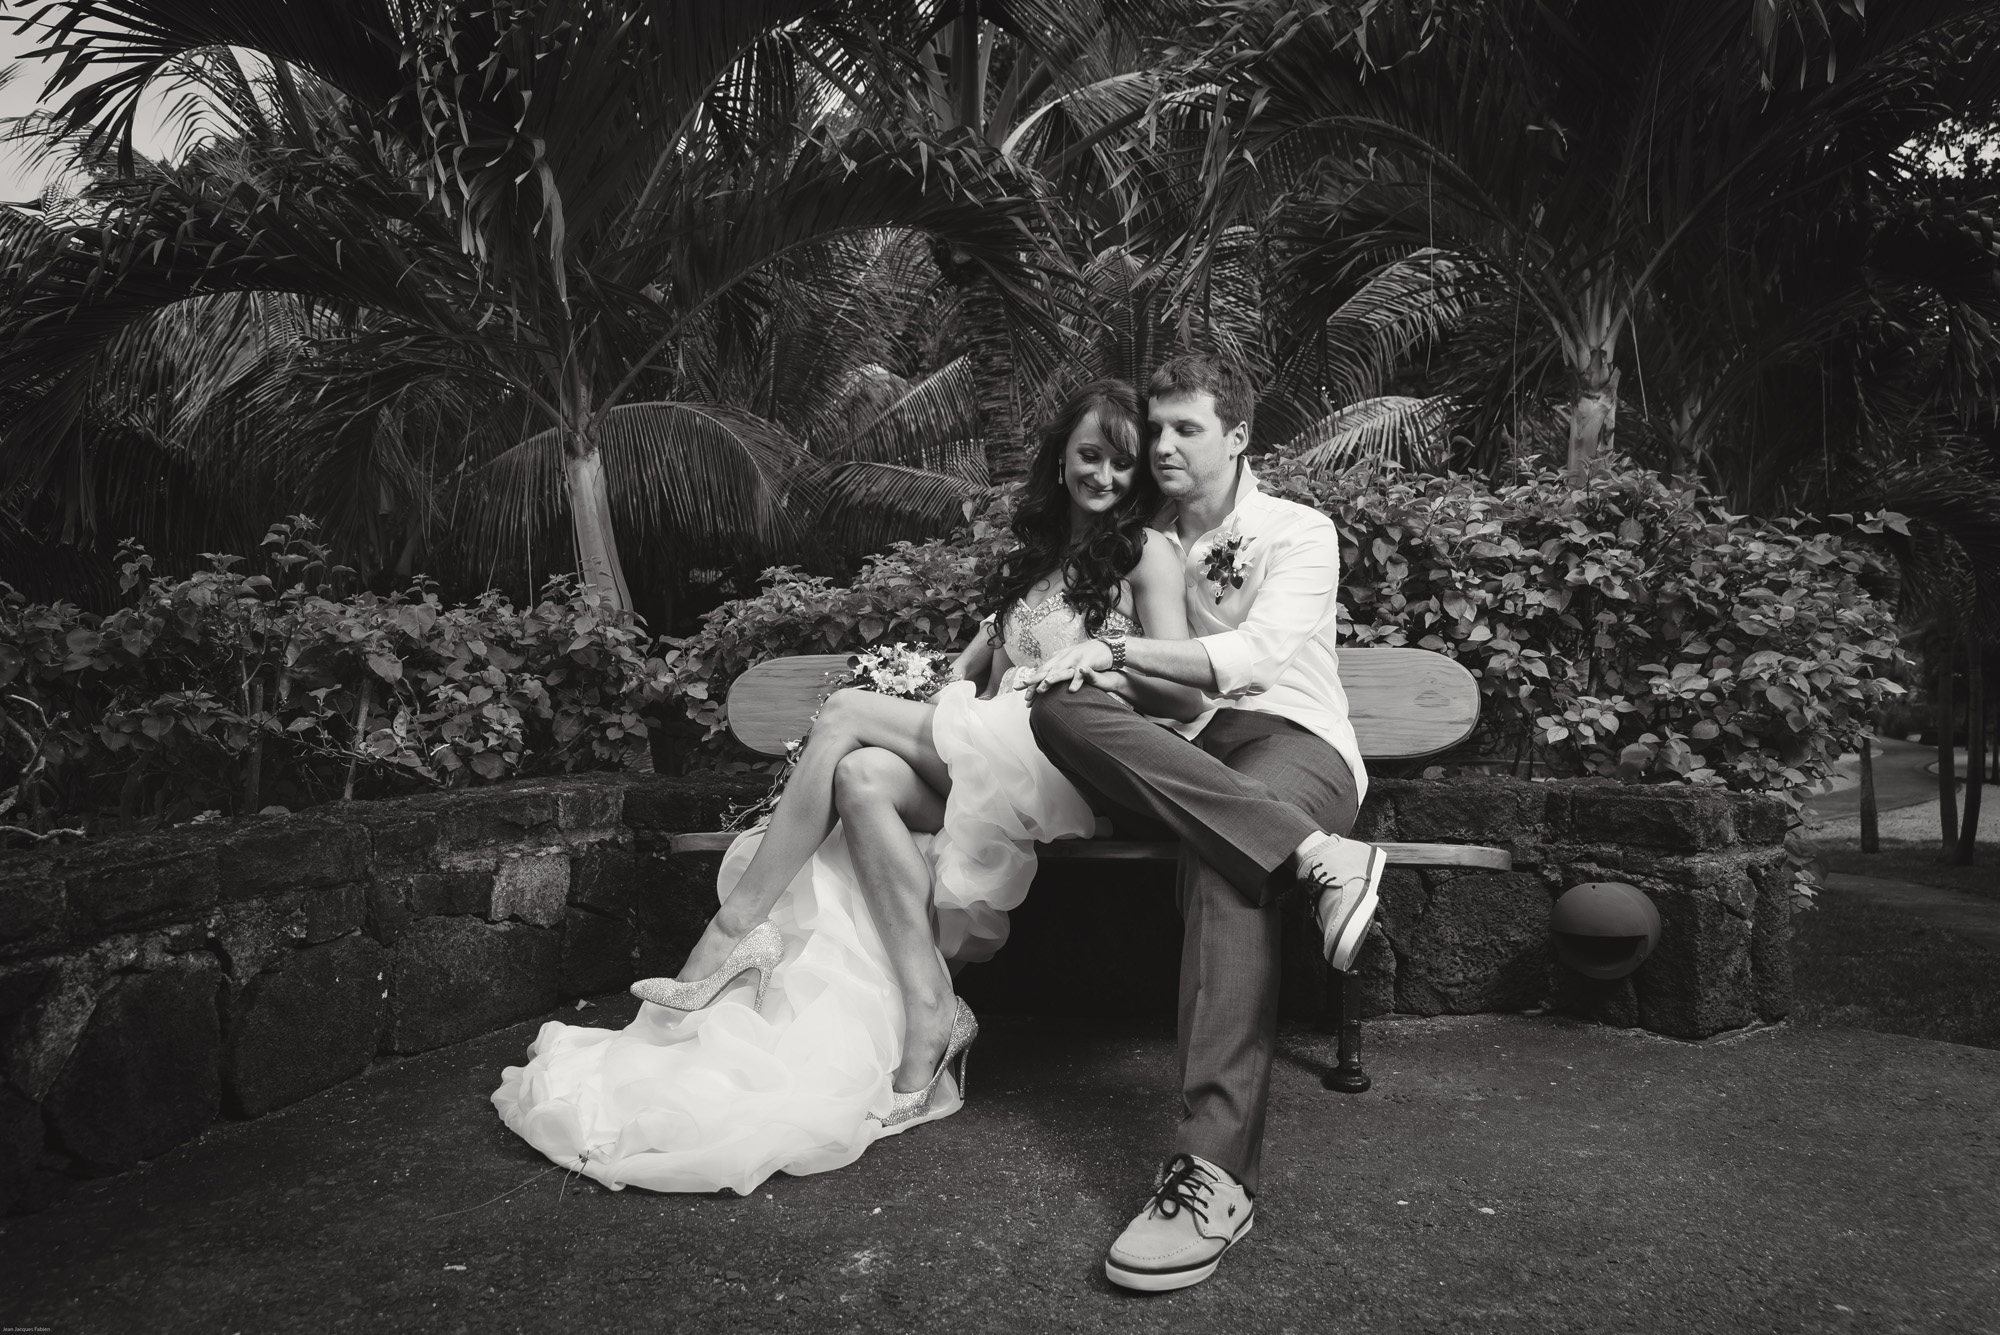 Justyna and Michael-131.jpg